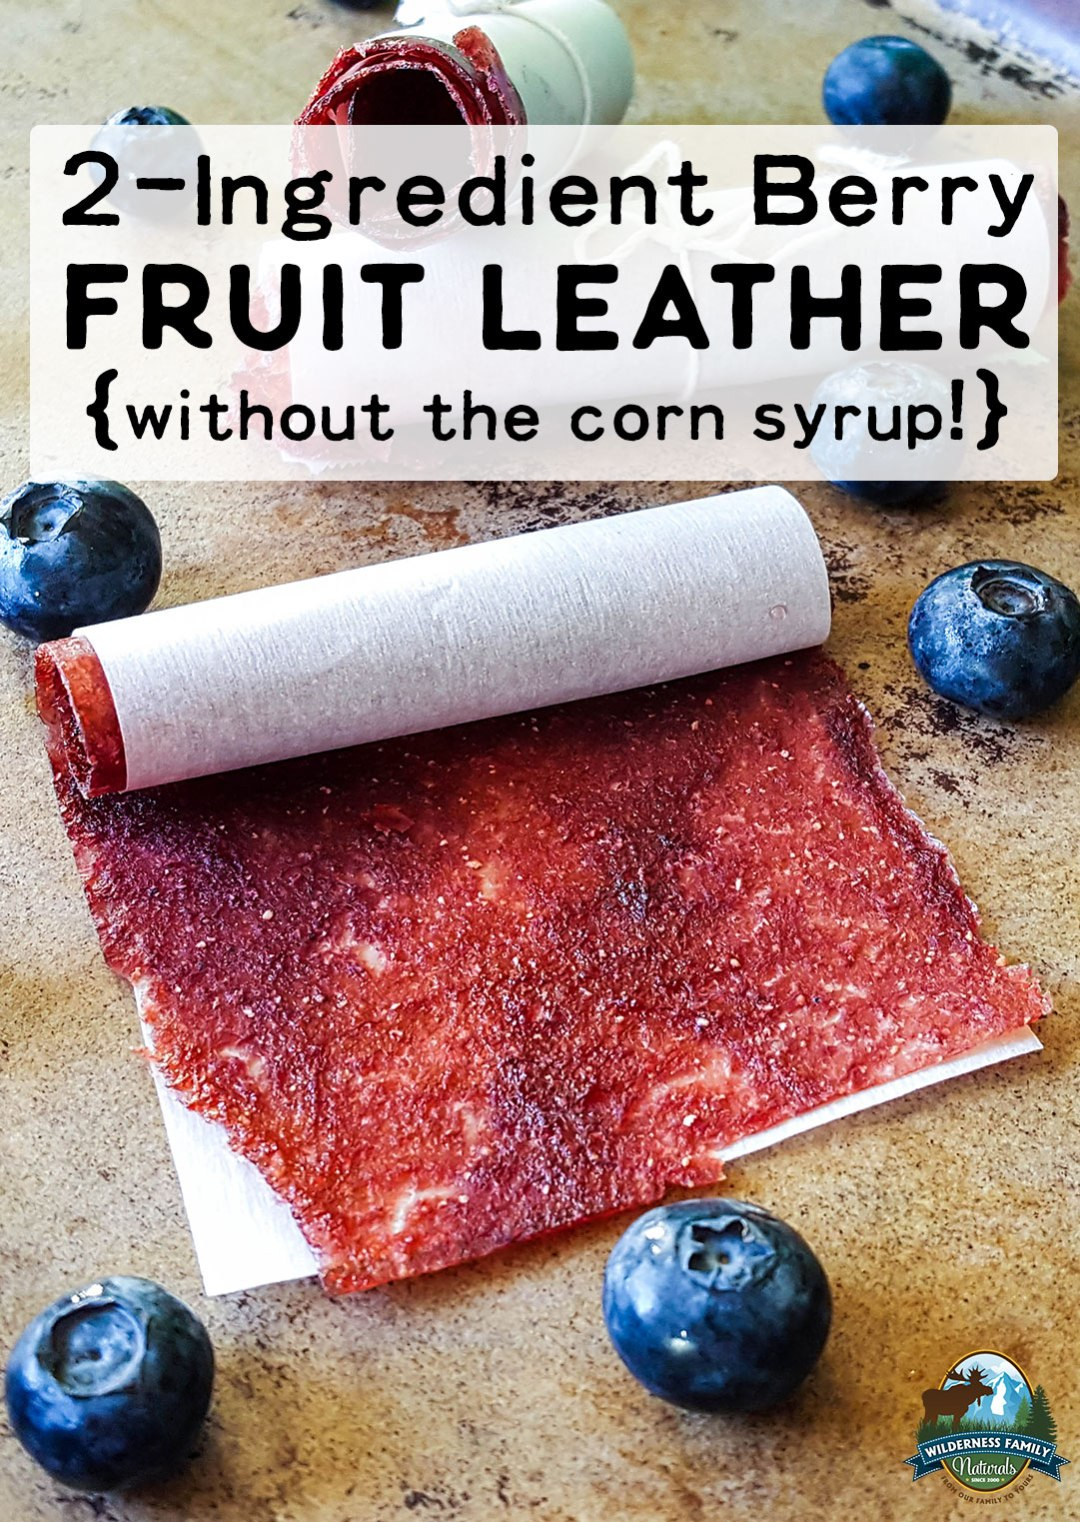 2-Ingredient Berry Fruit Leather {without the corn syrup!} | It's so easy to make your own berry fruit leather without the corn syrup! Just 2 ingredients are all you need! Don't have fresh berries? No problem! You won't believe how amazing fruit leather with freeze-dried berries is! | WildernessFamilyNaturals.com